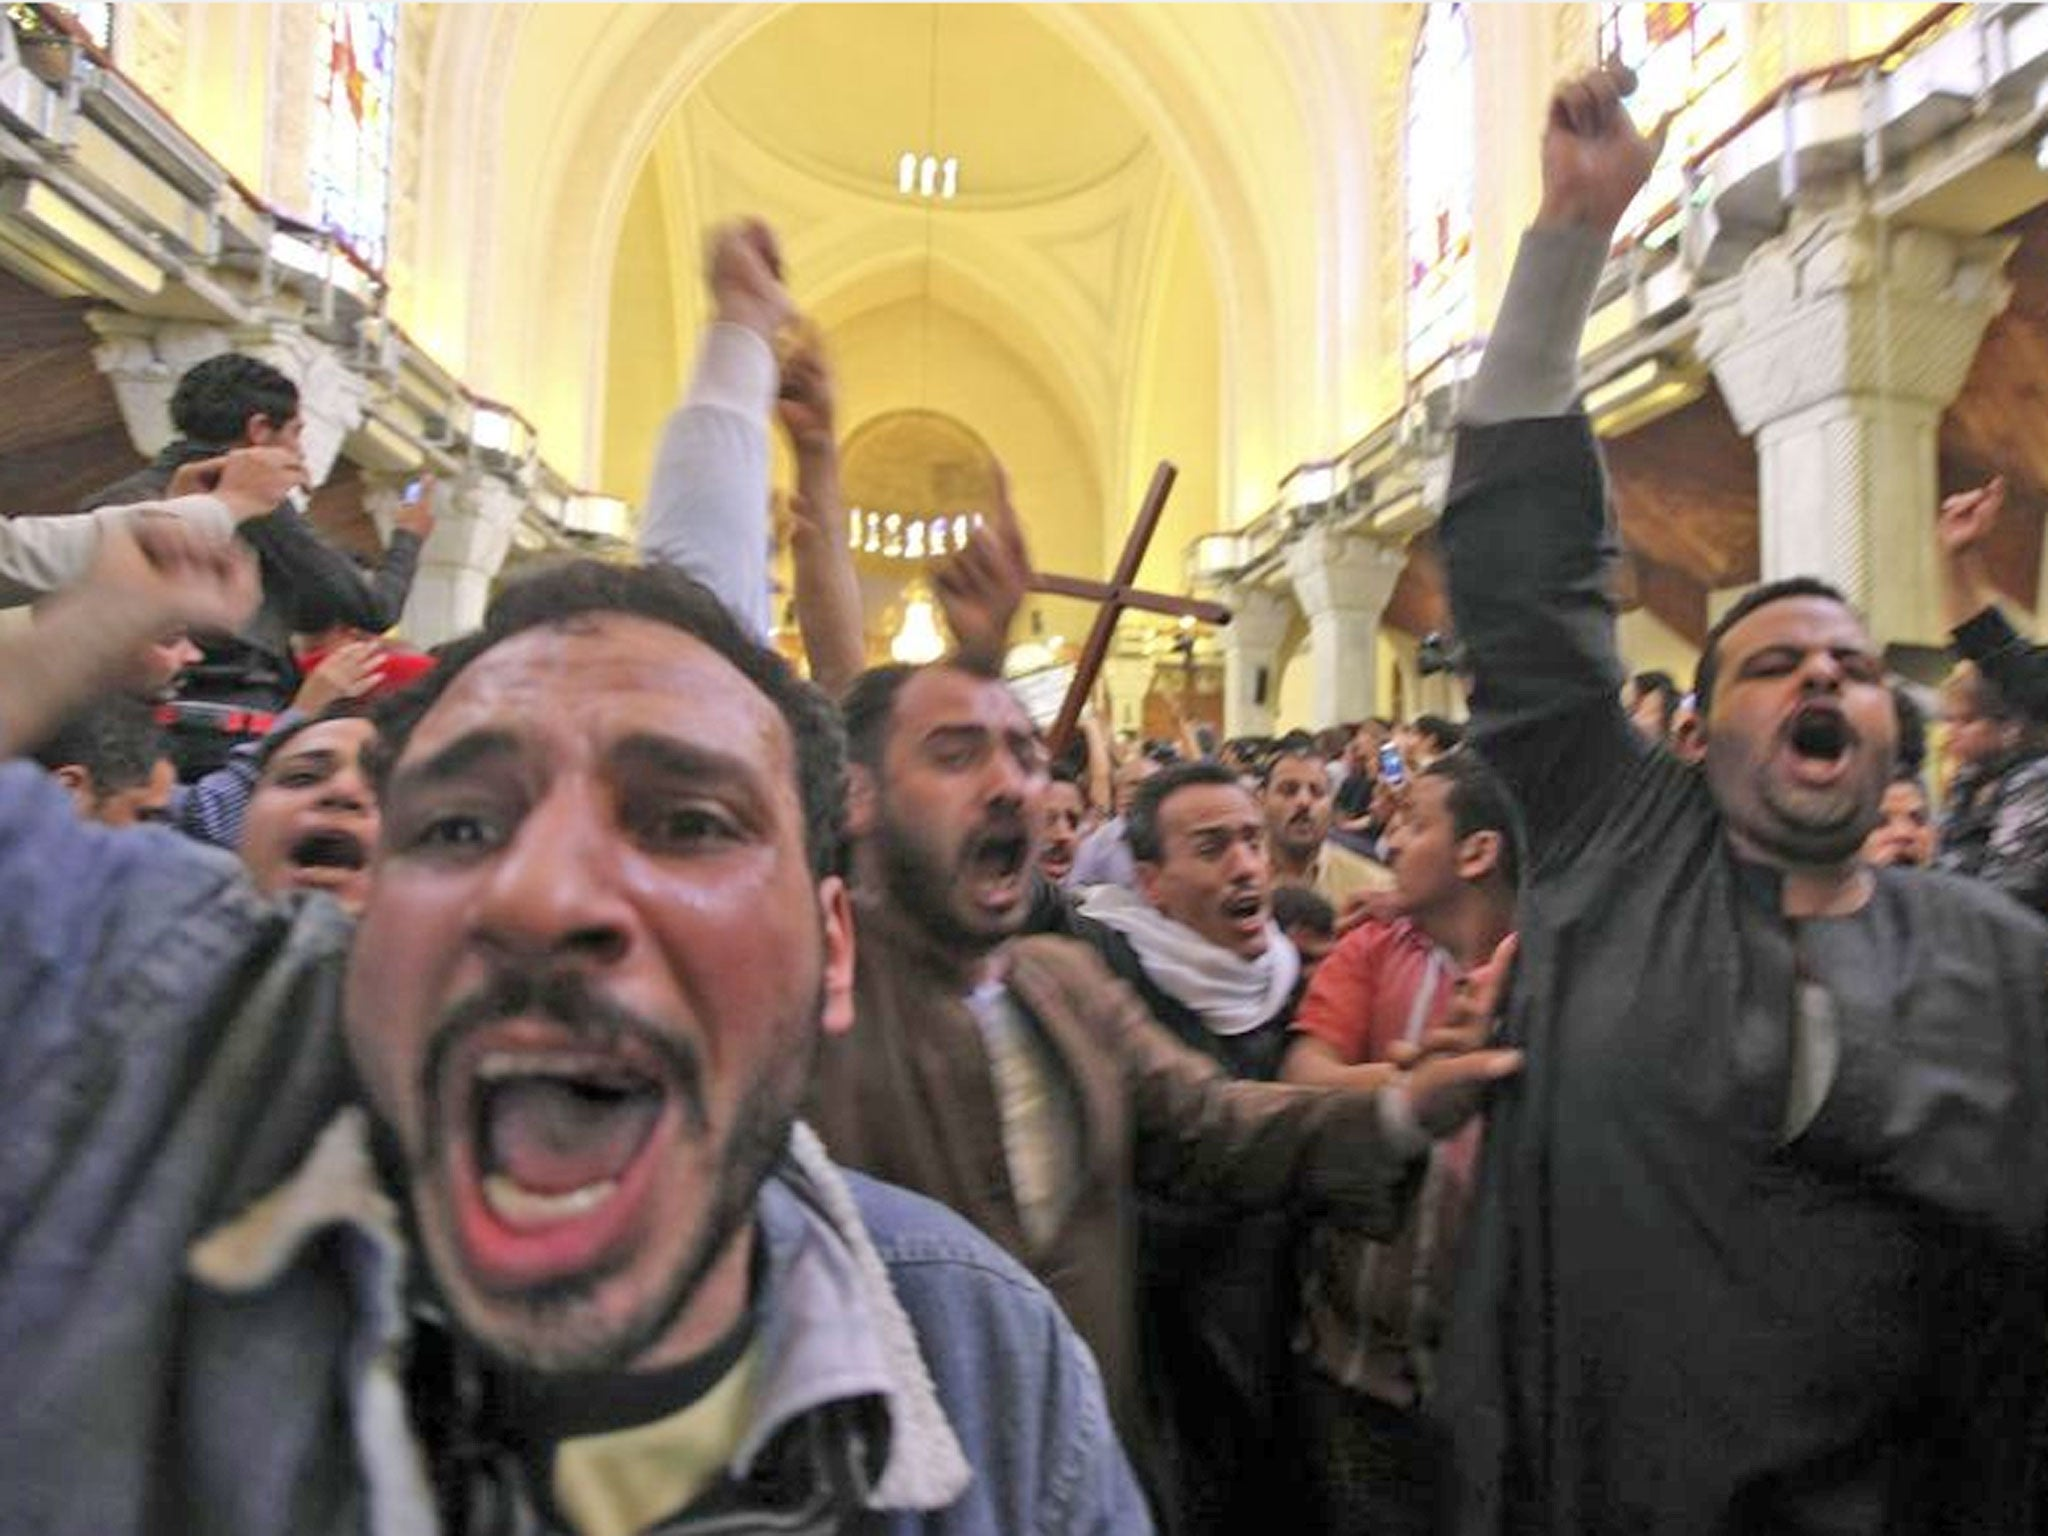 Christian singles in cairo